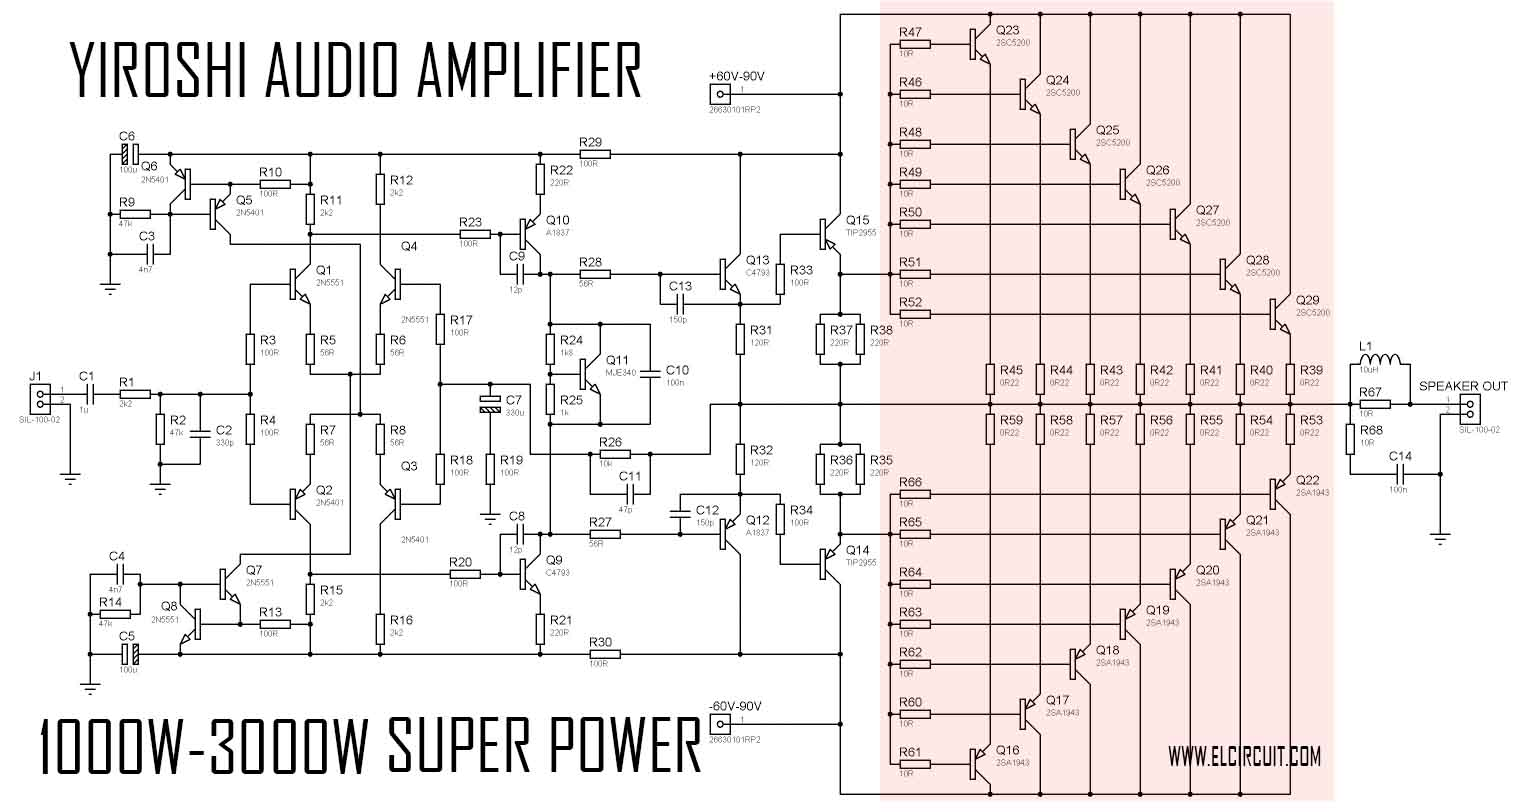 small resolution of super power amplifier yiroshi audio 1000 watt electronic circuit 1000 watt audio amplifier circuit diagram pdf 1000 watt audio amplifier circuit diagrams